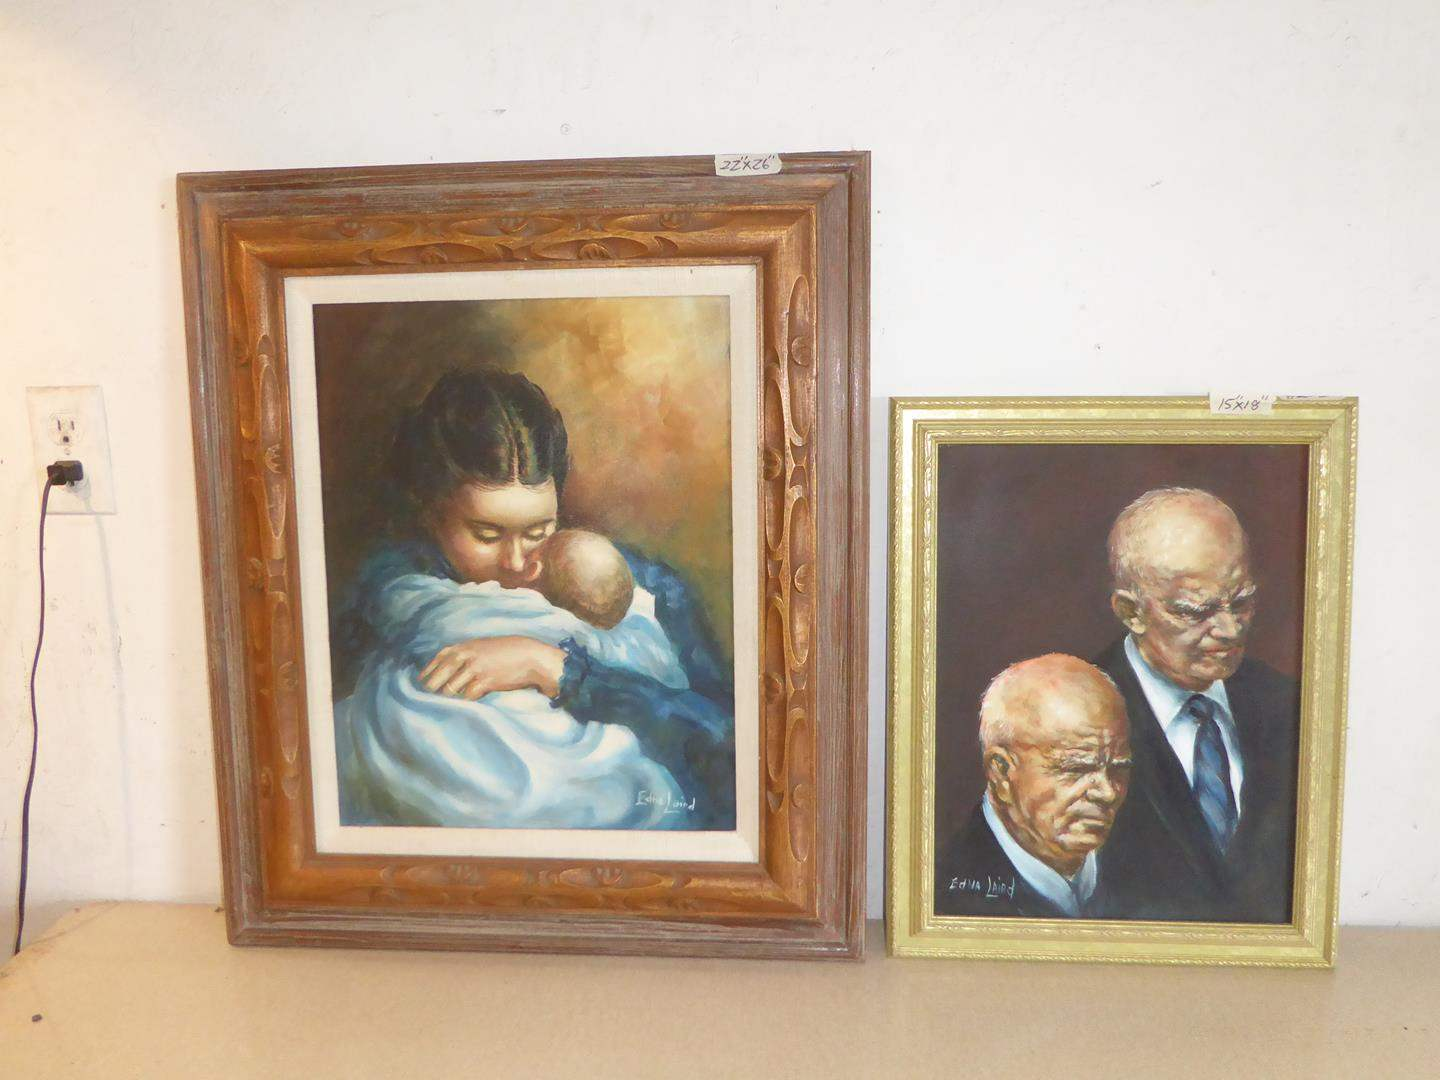 Lot # 253 - Two Framed Vintage Oil on Canvas Paintings by Edna Laird (main image)